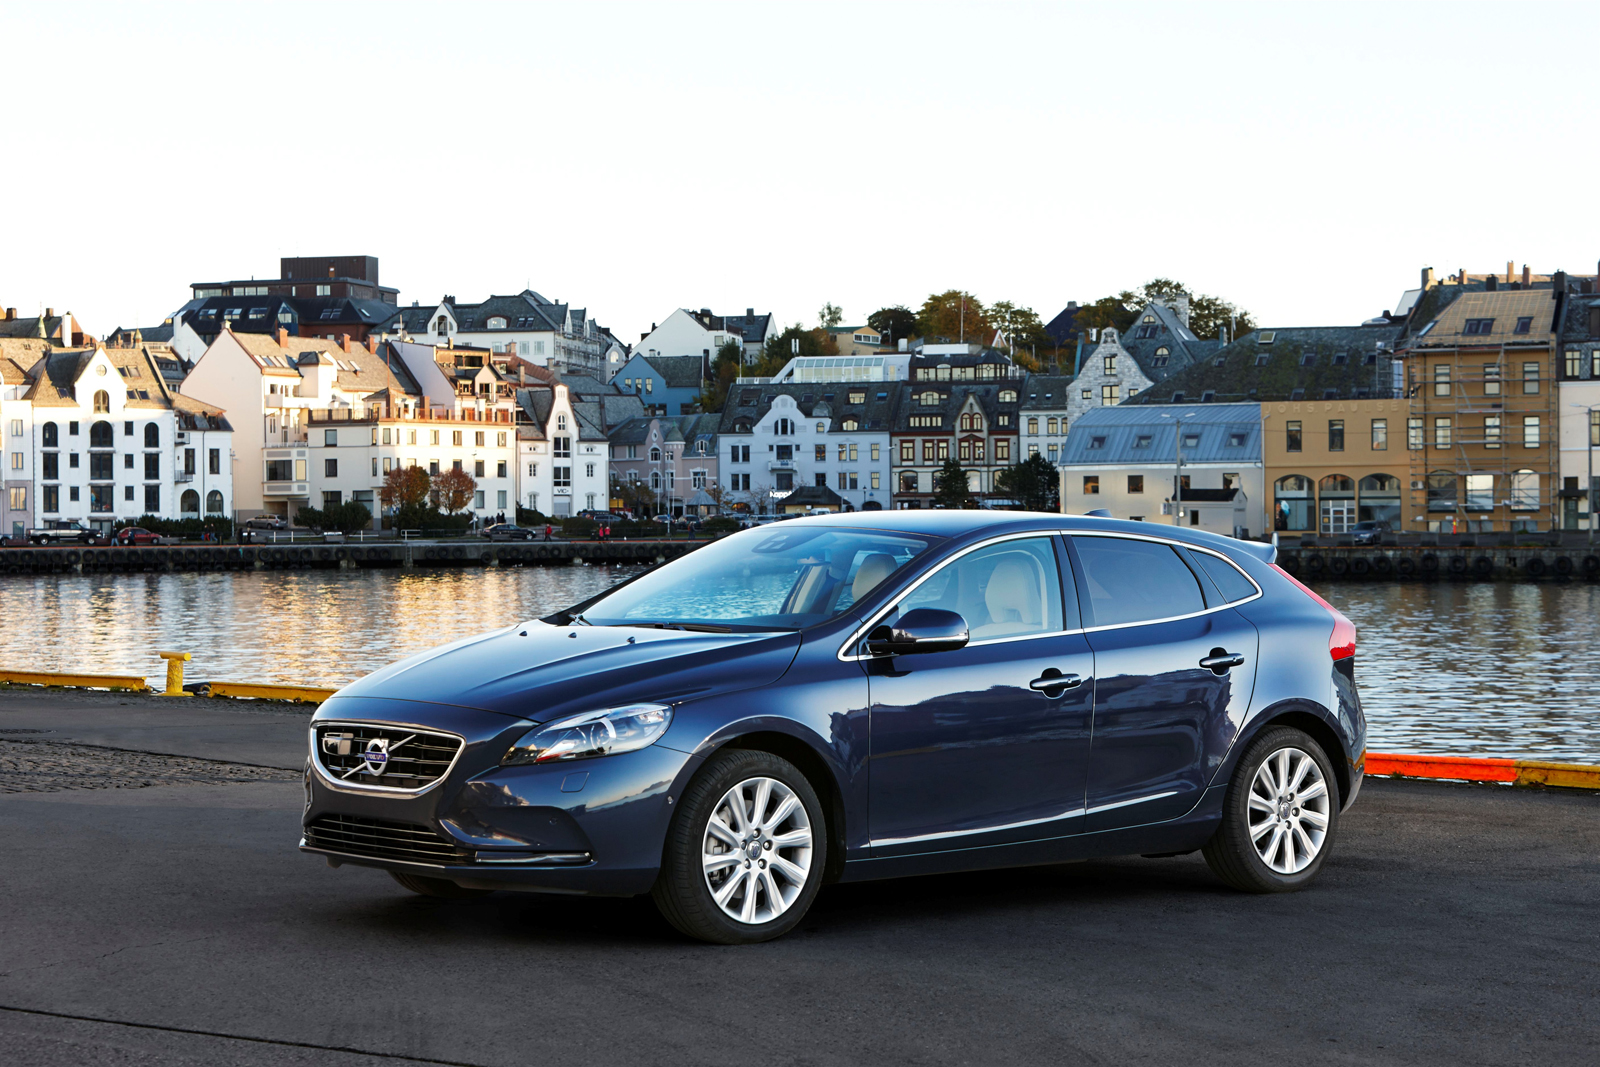 New Volvo V40 >> Volvo Introduces Powerful and Efficient New Engines for V40 D4 and T5 Models - autoevolution